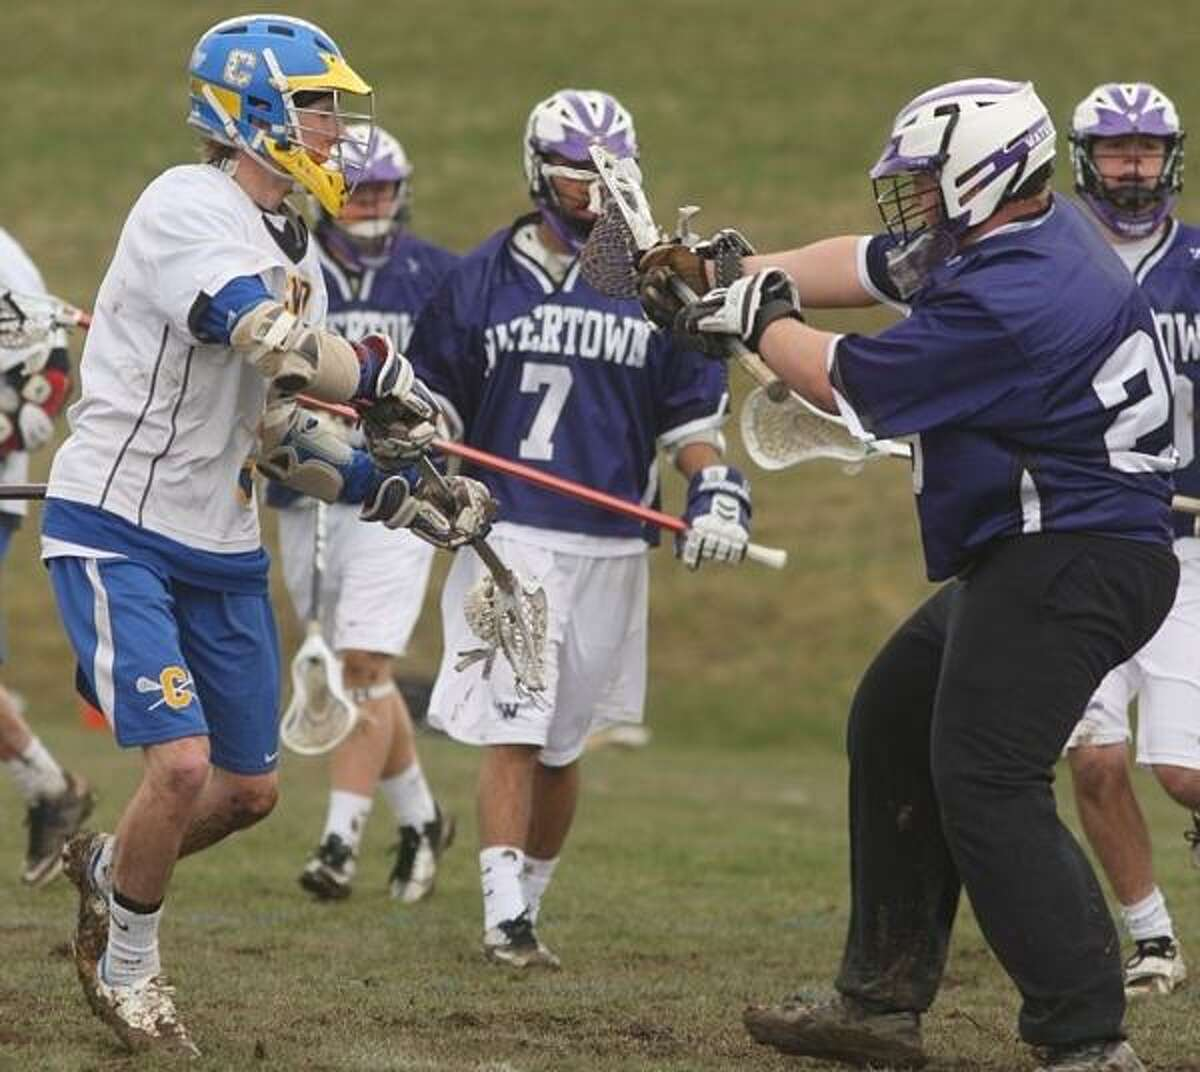 PHOTO BY JOHN HAEGER @ ONEIDAPHOTO ON TWITTER/ONEIDA DAILY DISPATCH Cazenovia's Conor Race (5) puts a shot past Watertown goalie Mike Gleason (26) to score the Lakers' 12th goal of the first half of their game on Saturday, April 20, 2013 in Cazenovia.